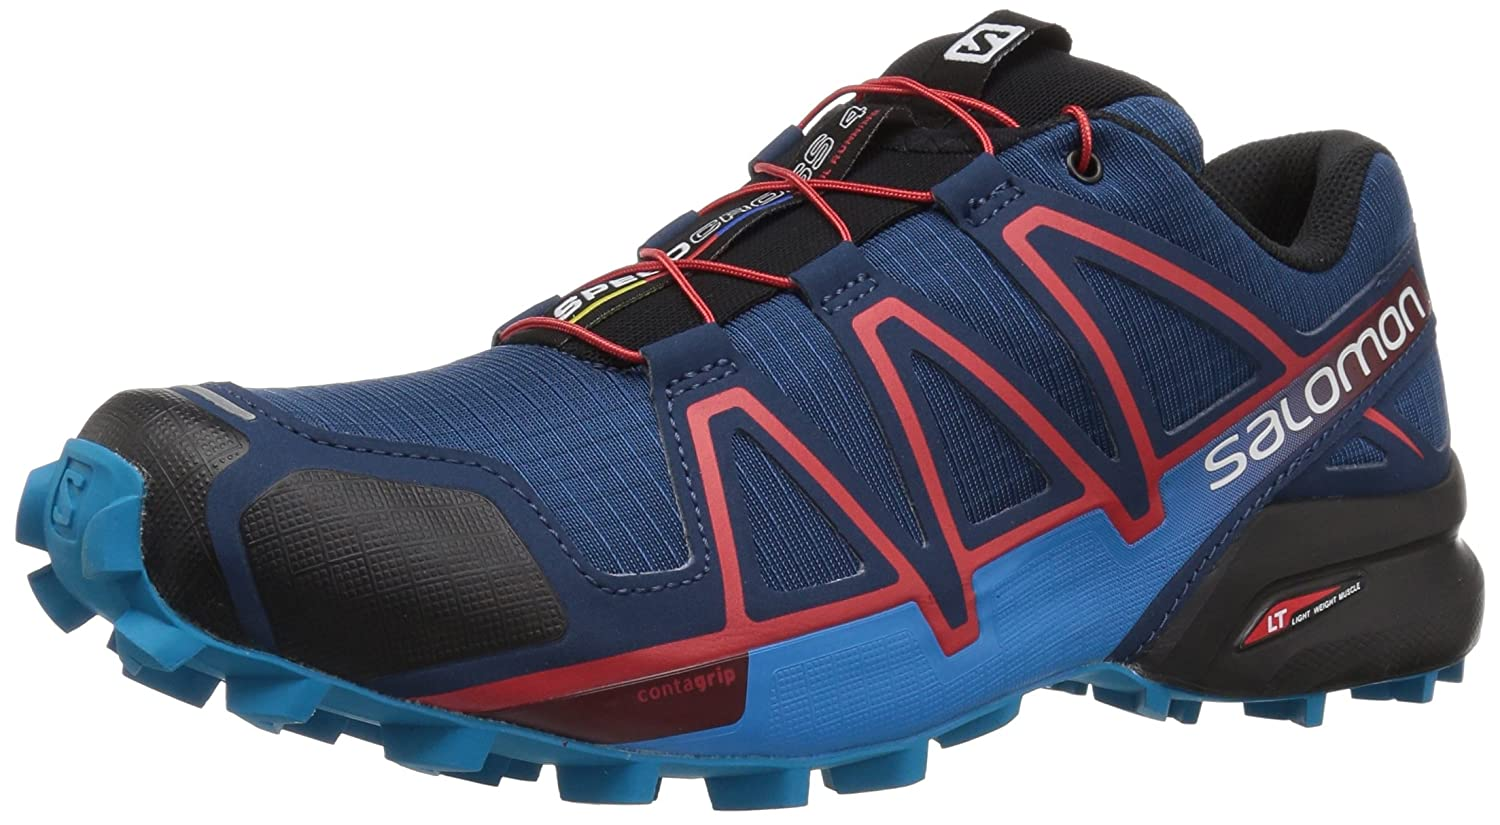 Salomon Herren Speedcross 4 Traillaufschuhe  42 2/3 EU|Blau (Poseidon/Hawaiian Surf/Fiery Red 000)